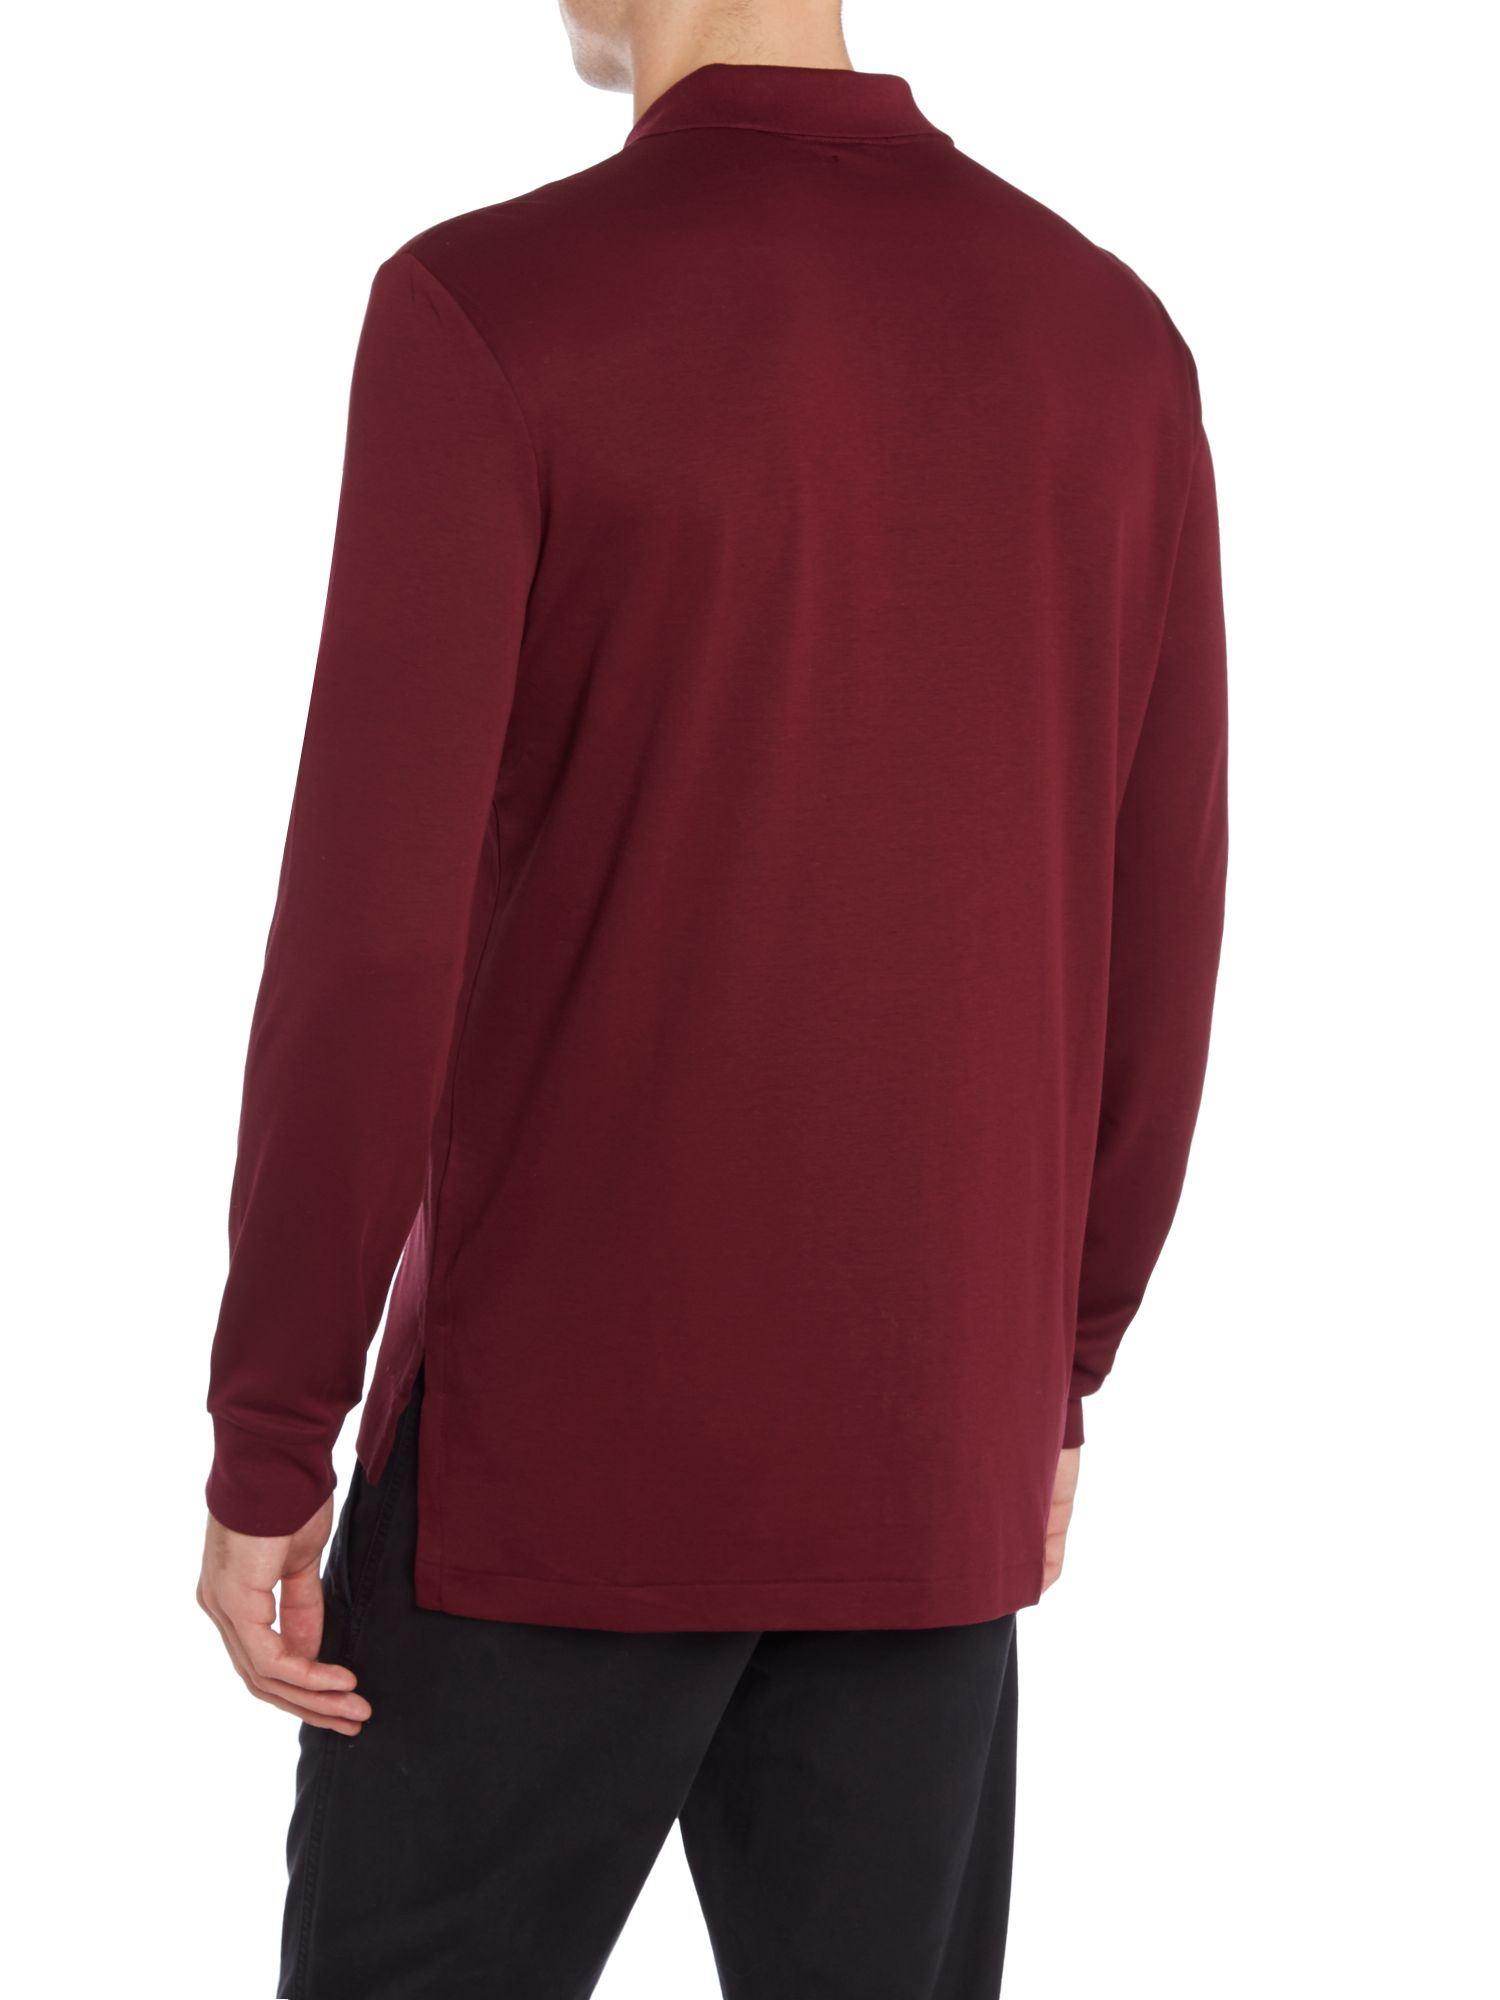 polo ralph lauren long sleeve polo sweat shirt in purple for men burgundy lyst. Black Bedroom Furniture Sets. Home Design Ideas